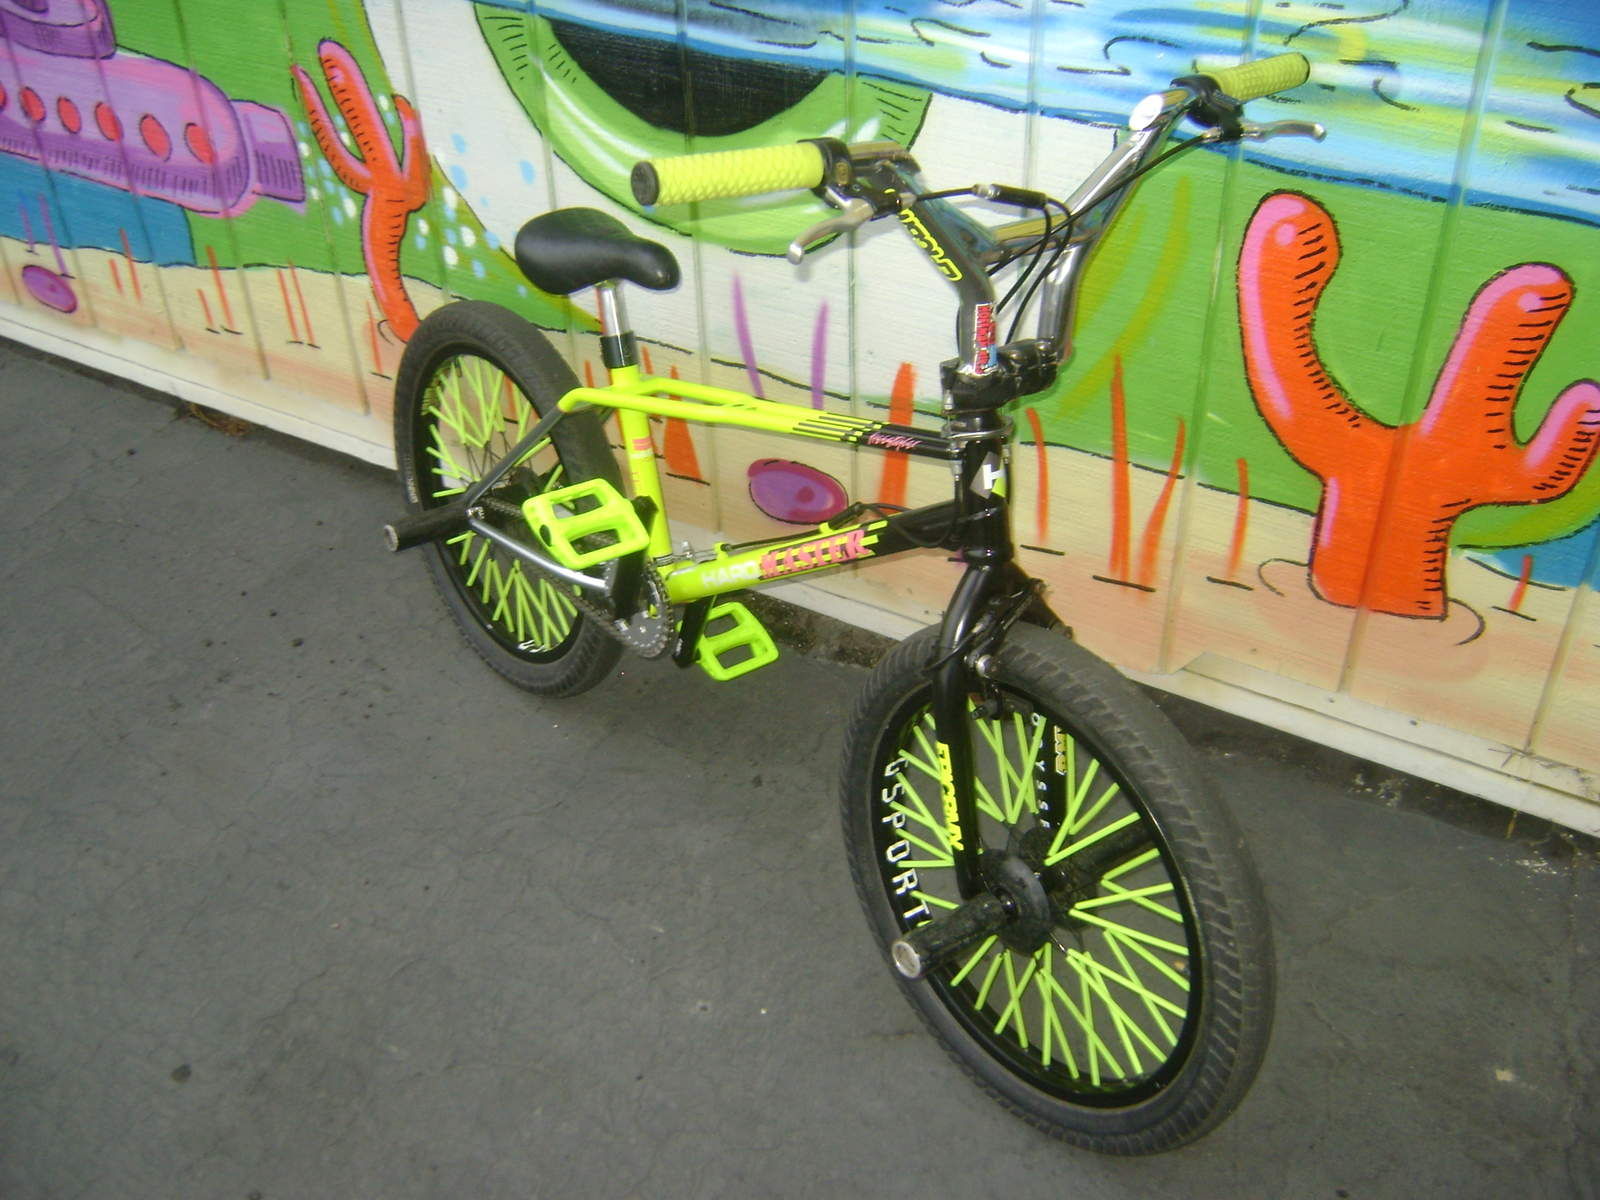 https://s3.amazonaws.com/uploads.bmxmuseum.com/user-images/6905/dsc011915cdadc0838.jpg